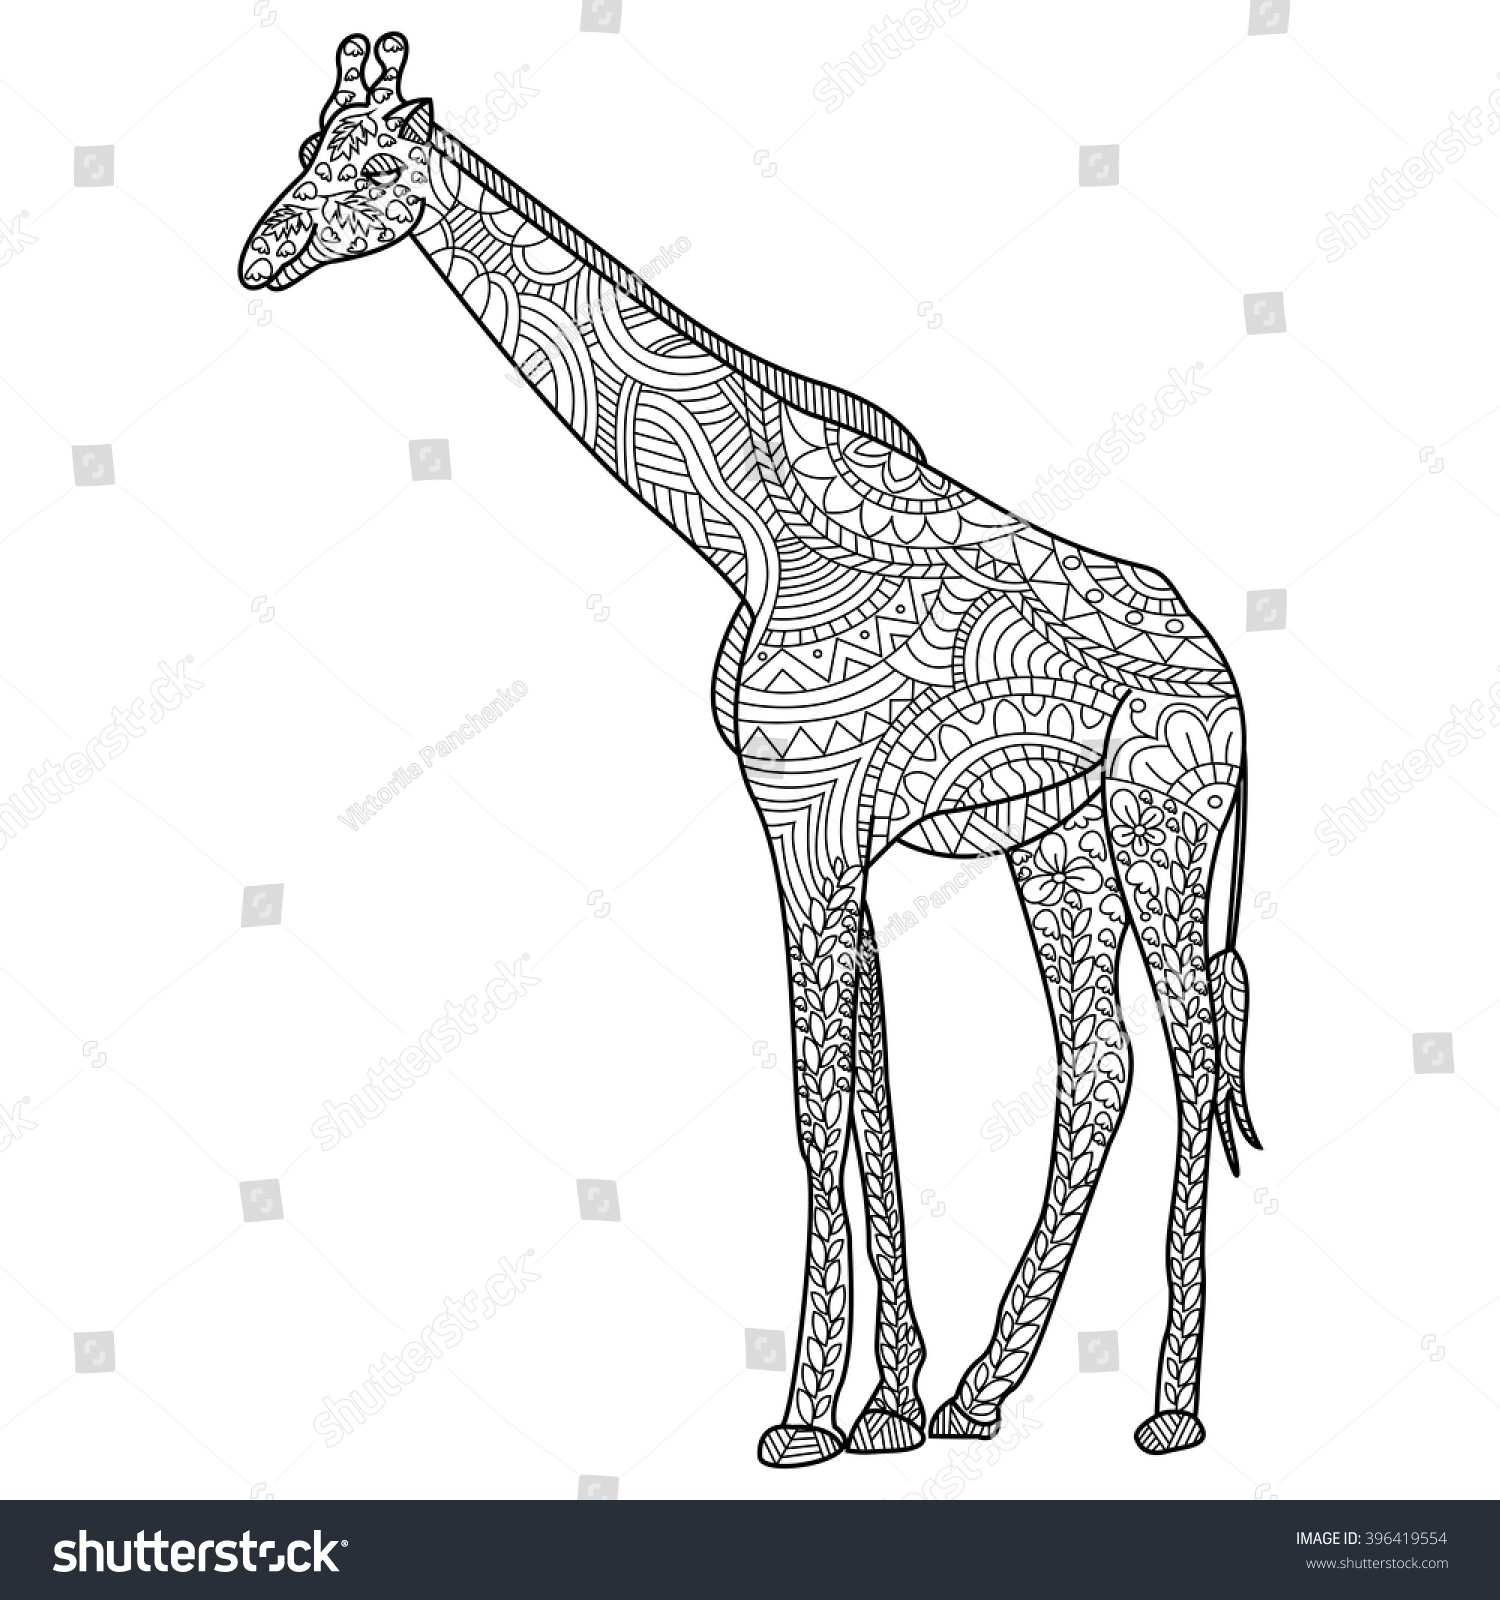 giraffe coloring book for adults vector illustration anti stress coloring for adult zentangle